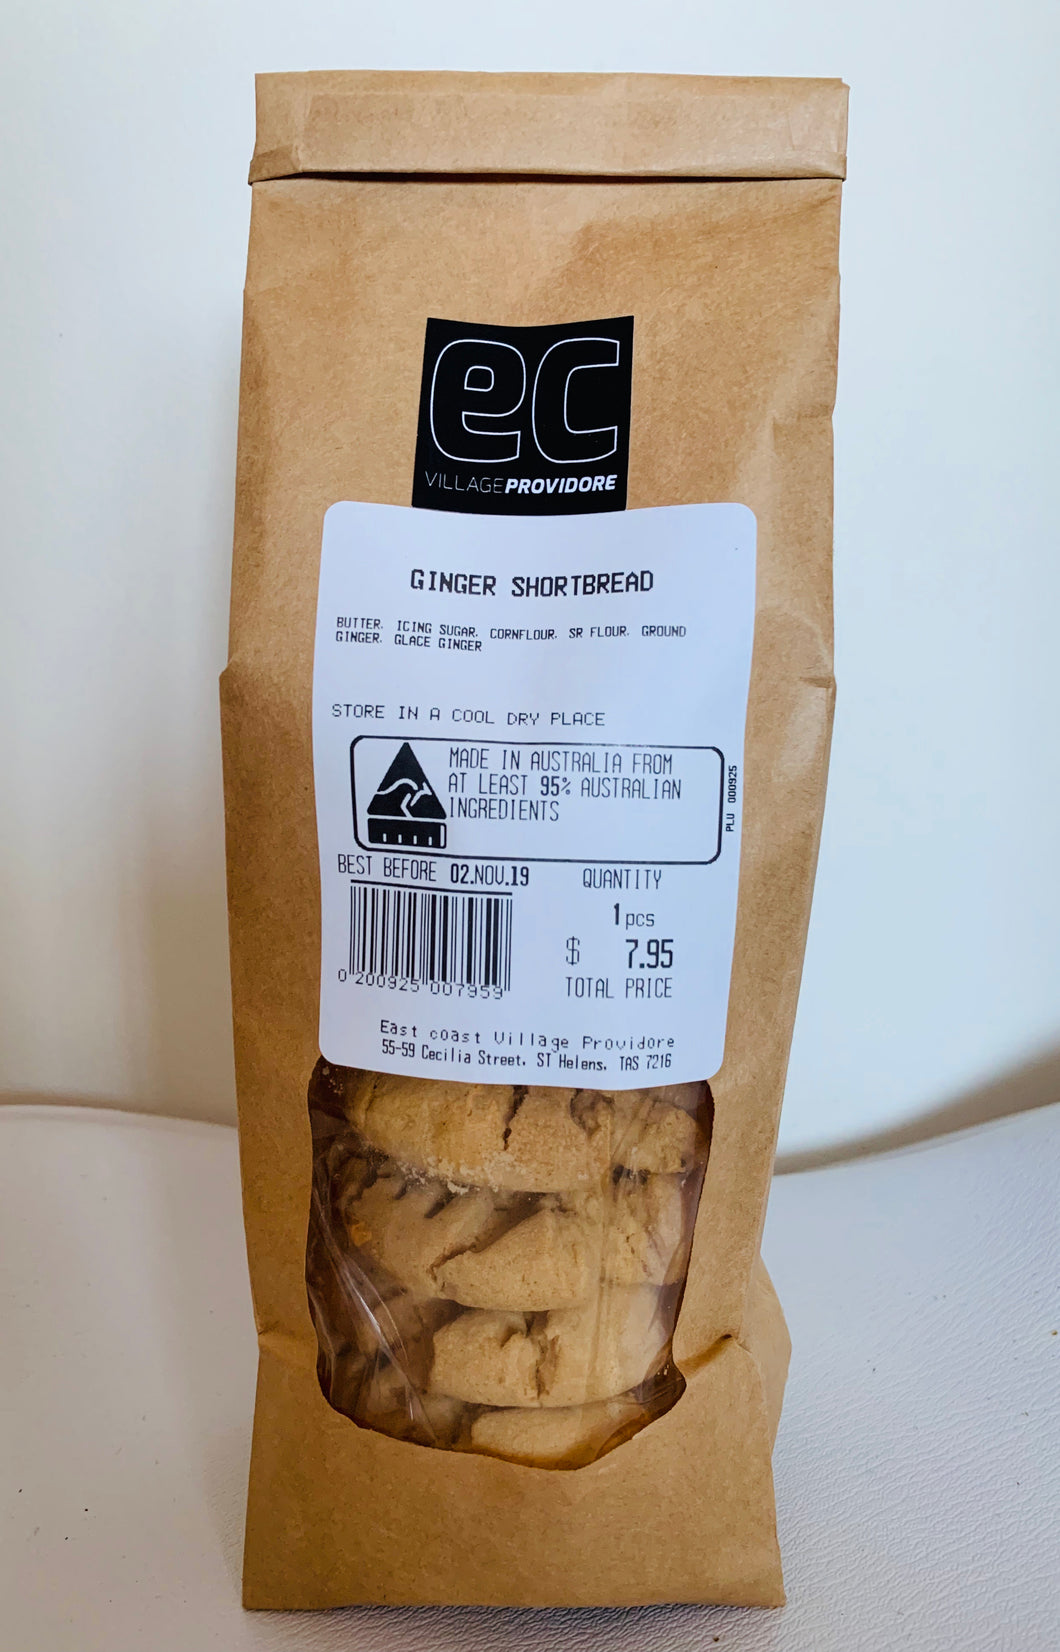 EC Village Providore GINGER SHORTBREAD